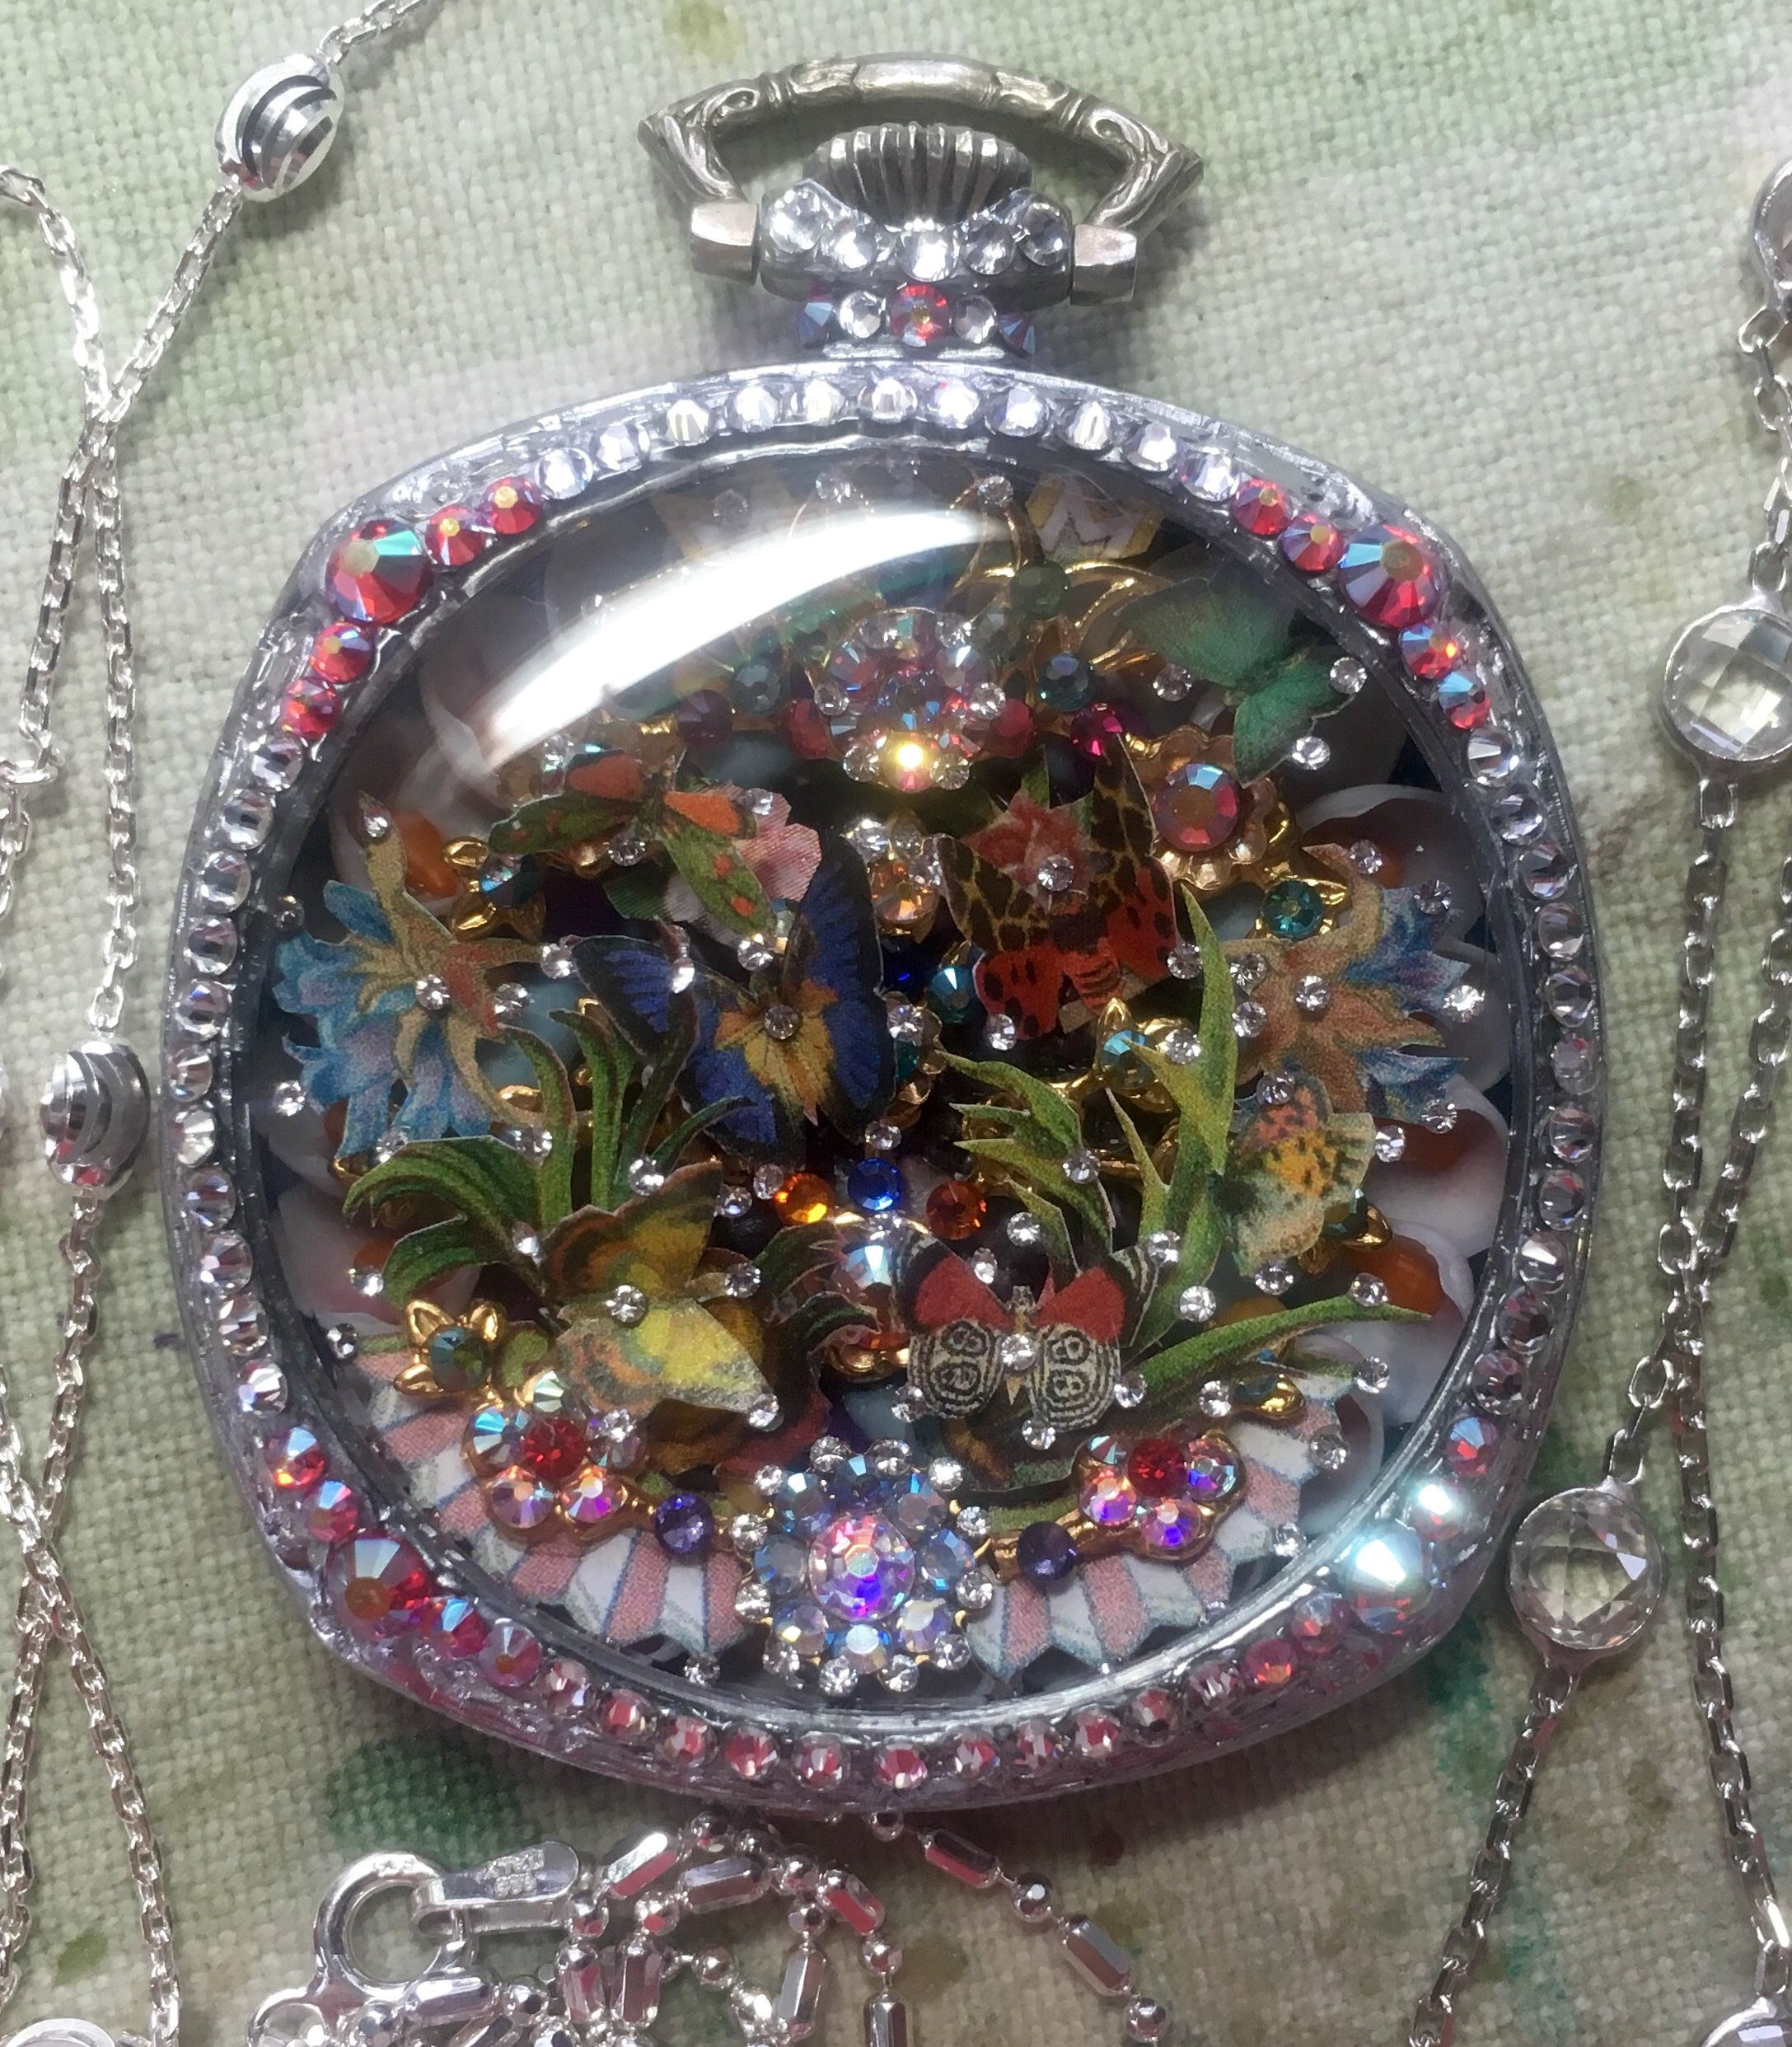 mirror son keys my made mostly pin watches jewelry frame a mosaic i using metal for